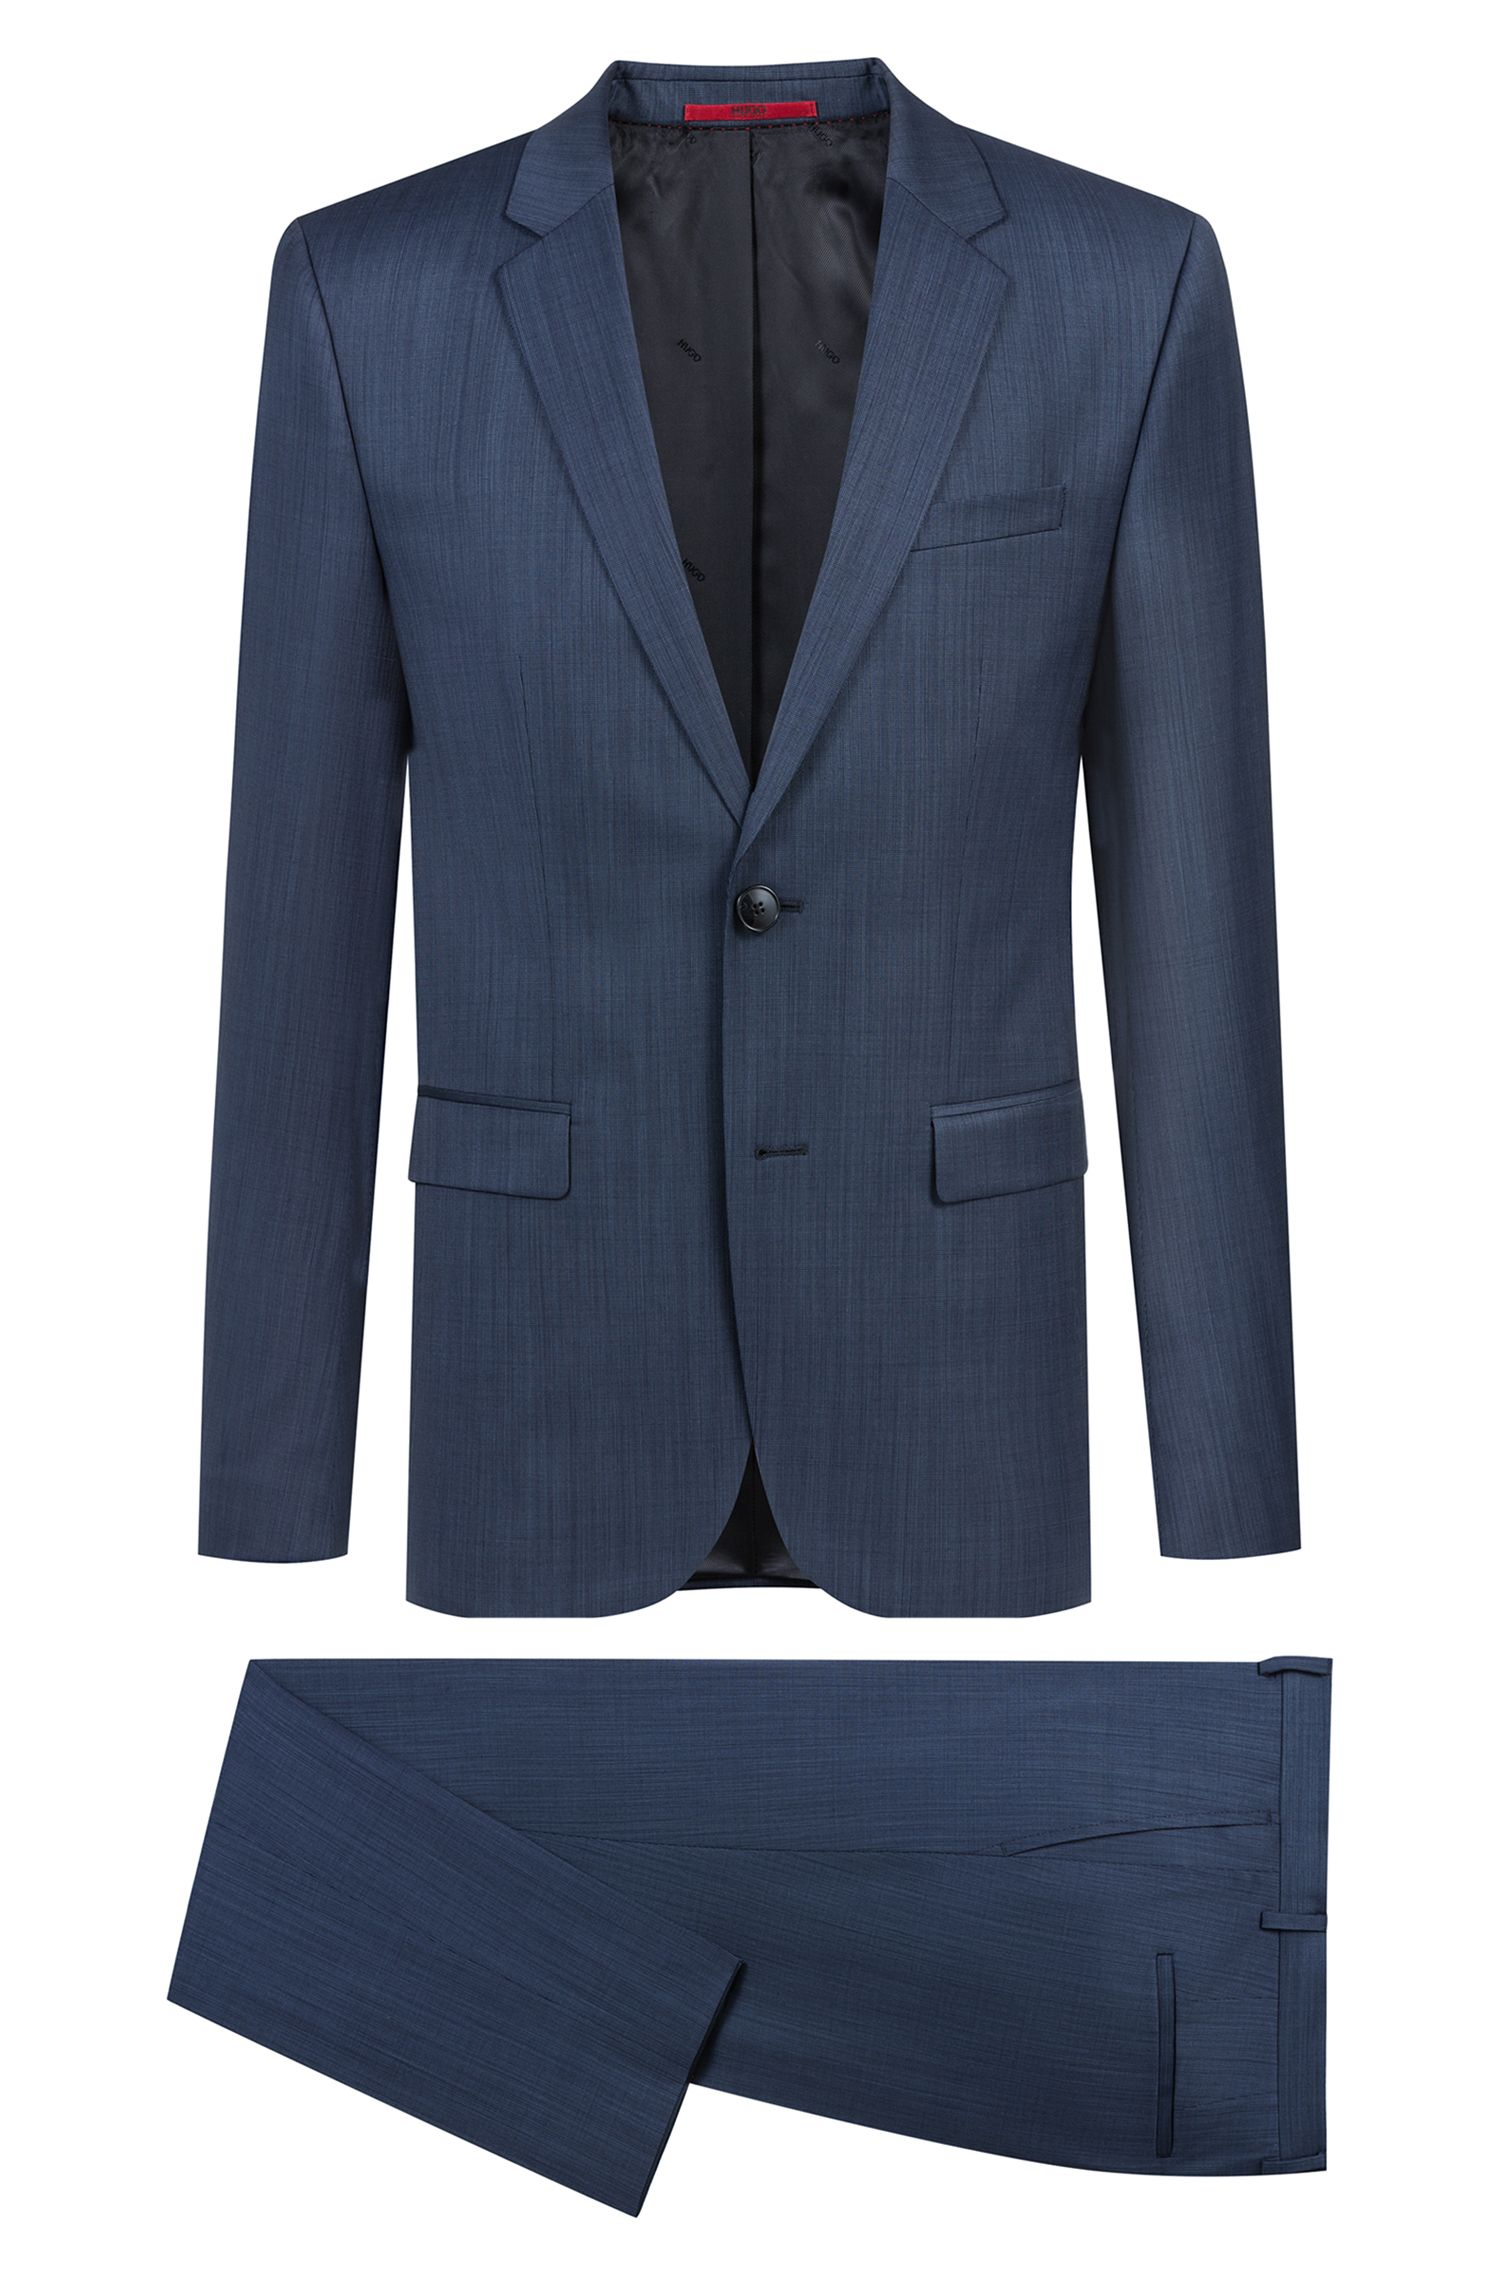 Abito extra slim fit in misto lana vergine bicolore, Blu scuro